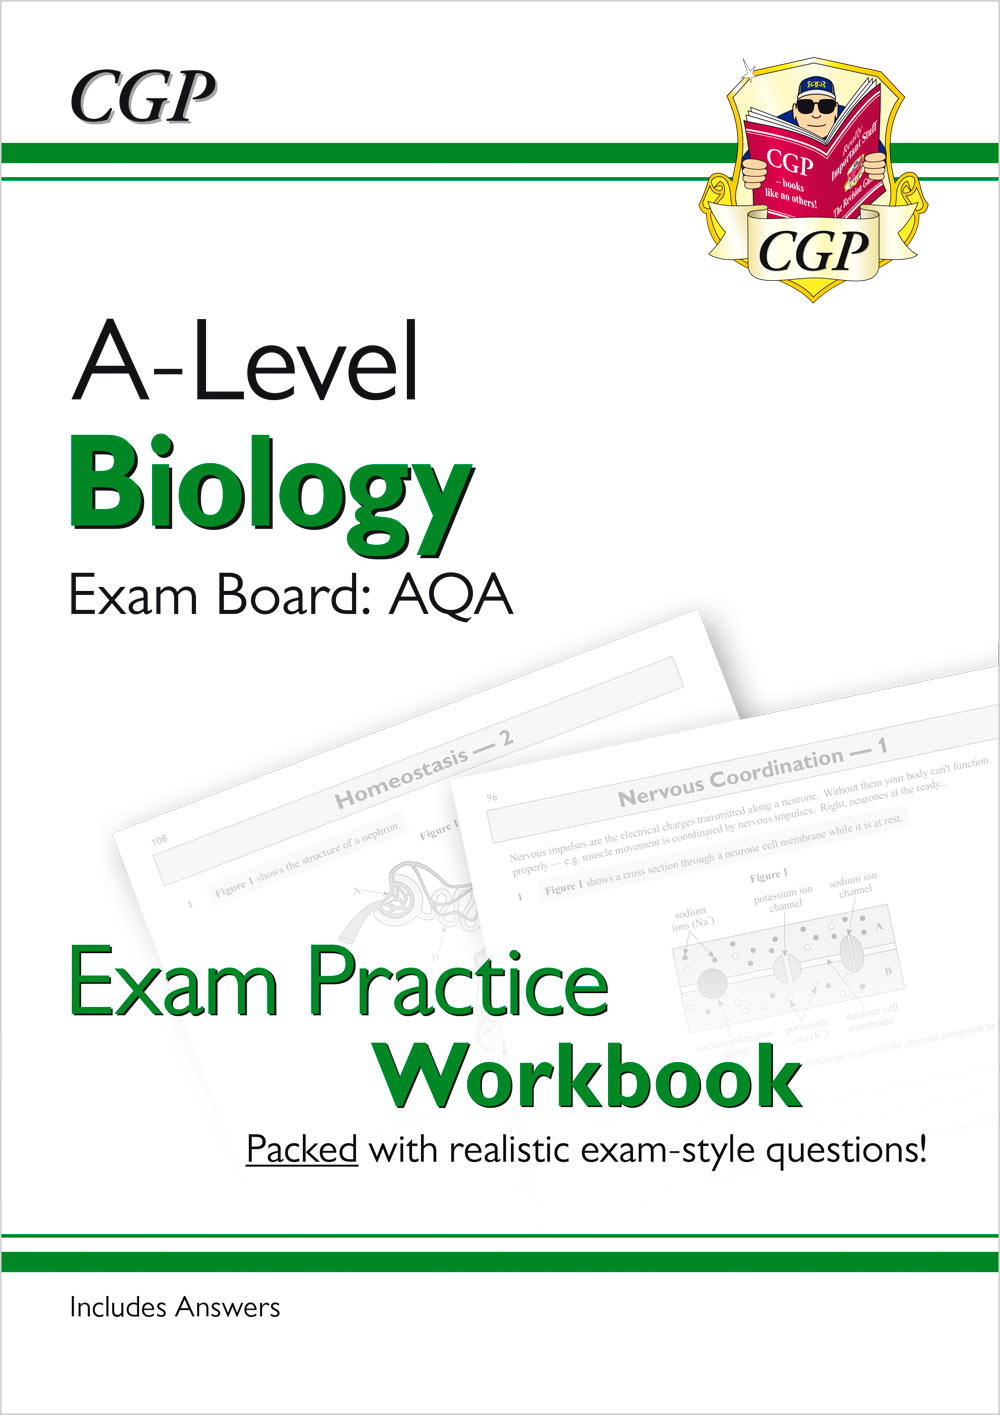 BAQ71 - New A-Level Biology: AQA Year 1 & 2 Exam Practice Workbook - includes Answers